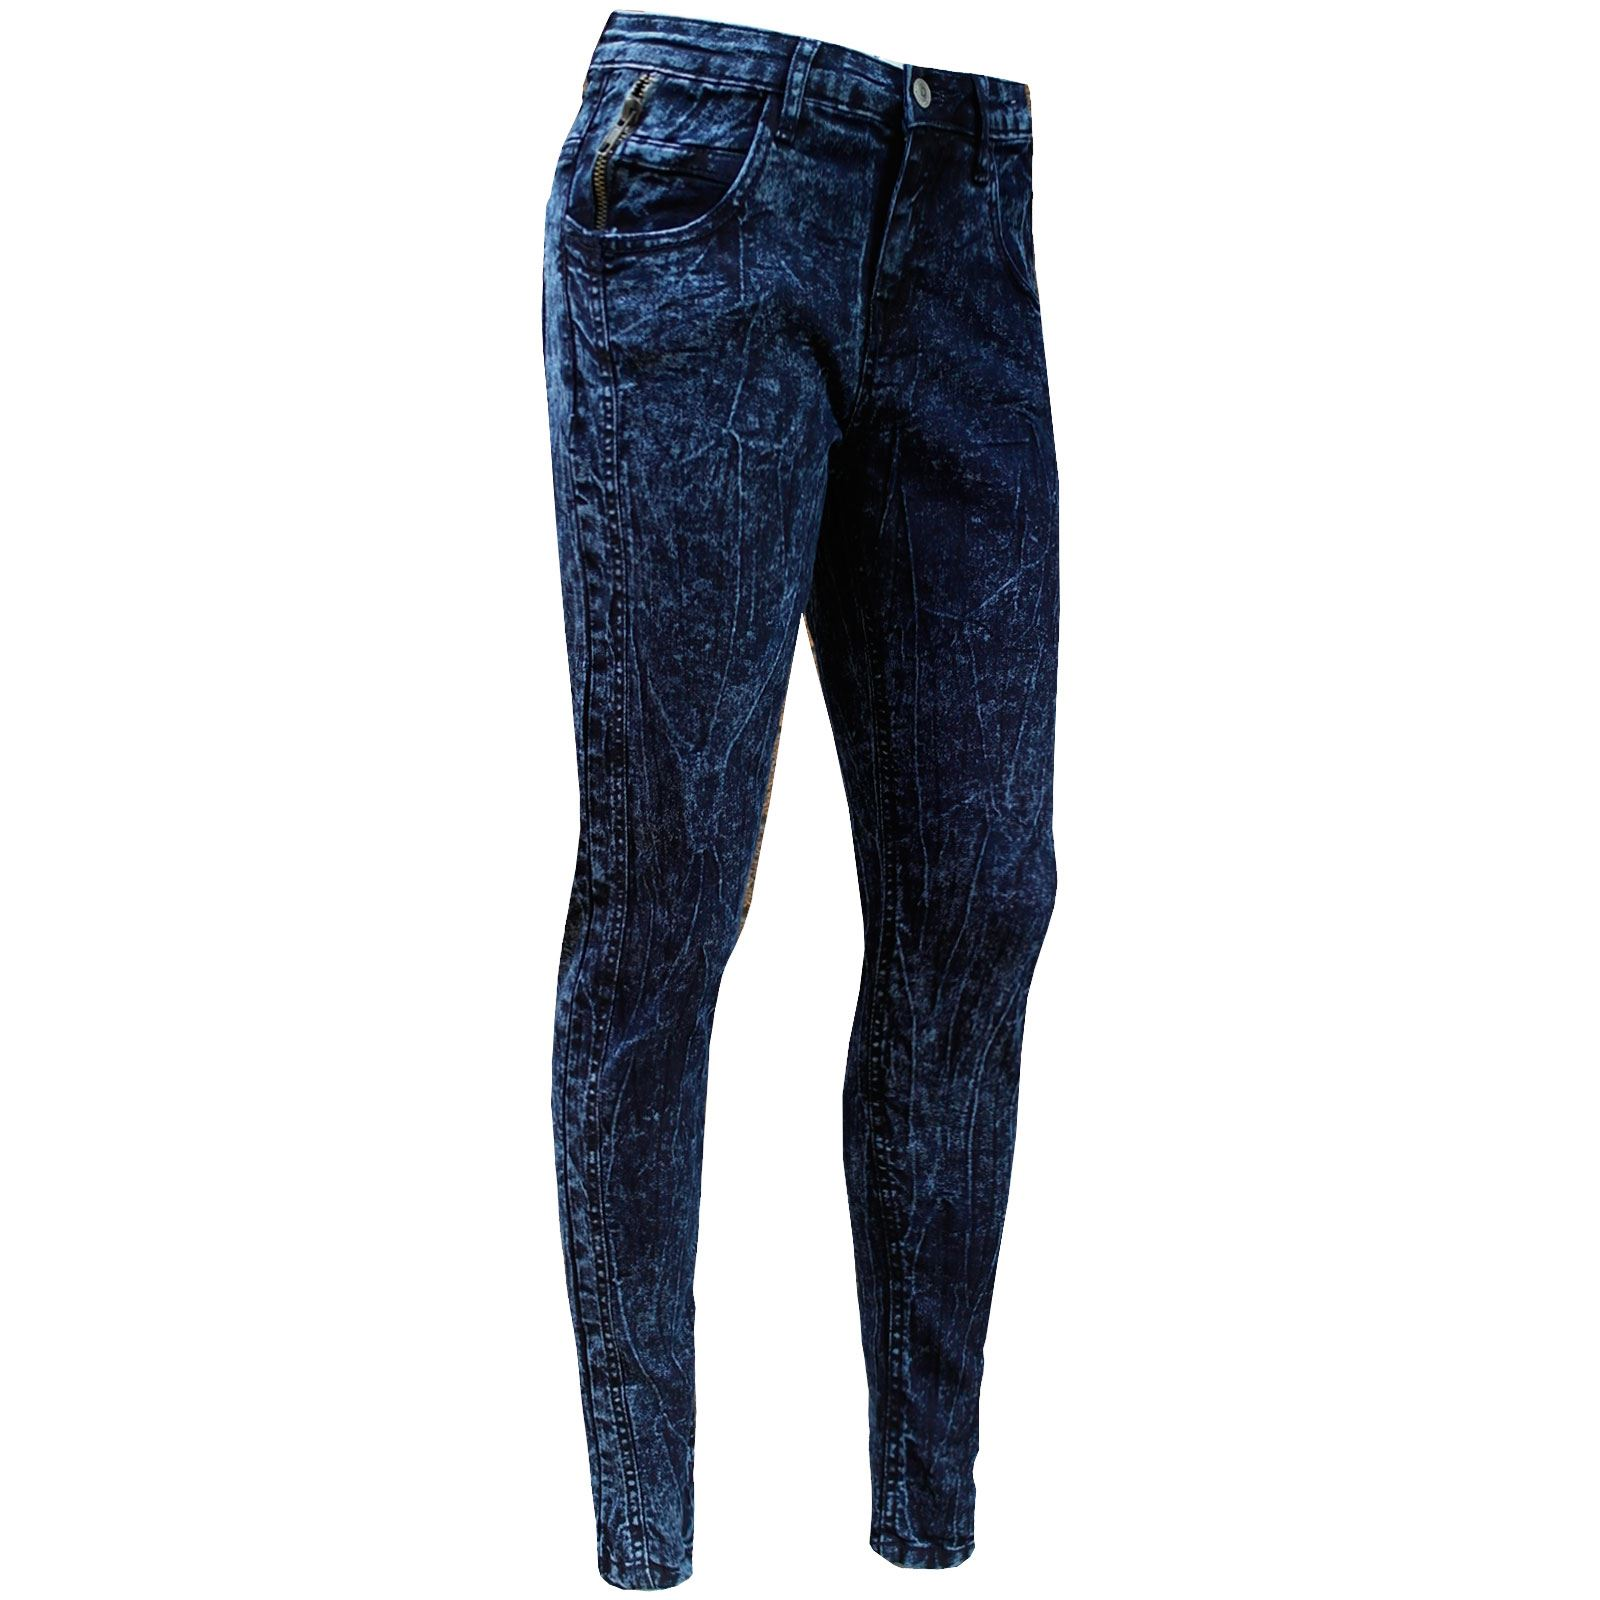 Shop trendy jegging only on janydo.ml! We have all the jegging styles you need in New Styles Just Arrived · Final Clearance Sale · Free Shipping Over $50 · Free Returns to StoreBrands: Silver Jeans Co., Vigoss, maurices.